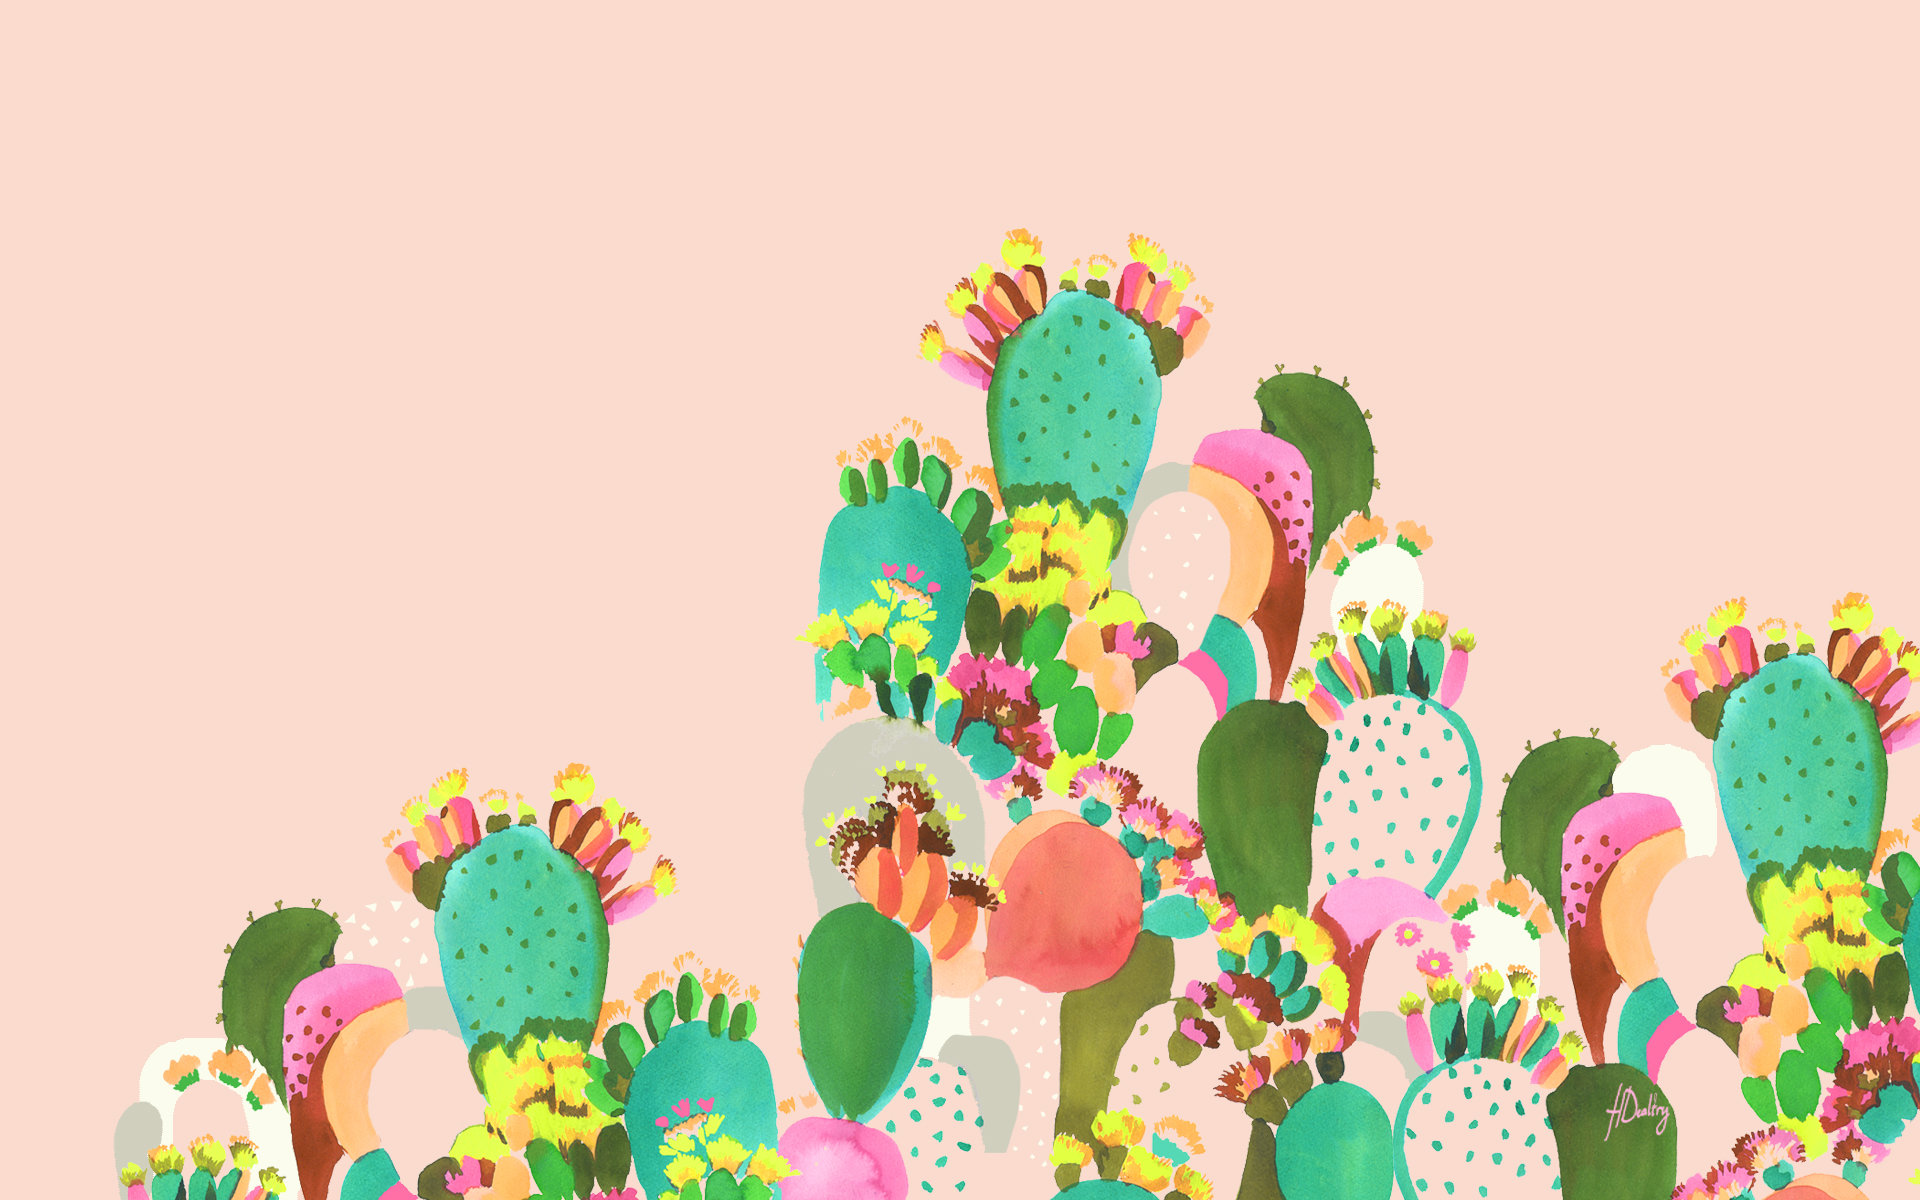 Cactus-by-Helen-Dealtry-wallpaper-wpc5803141